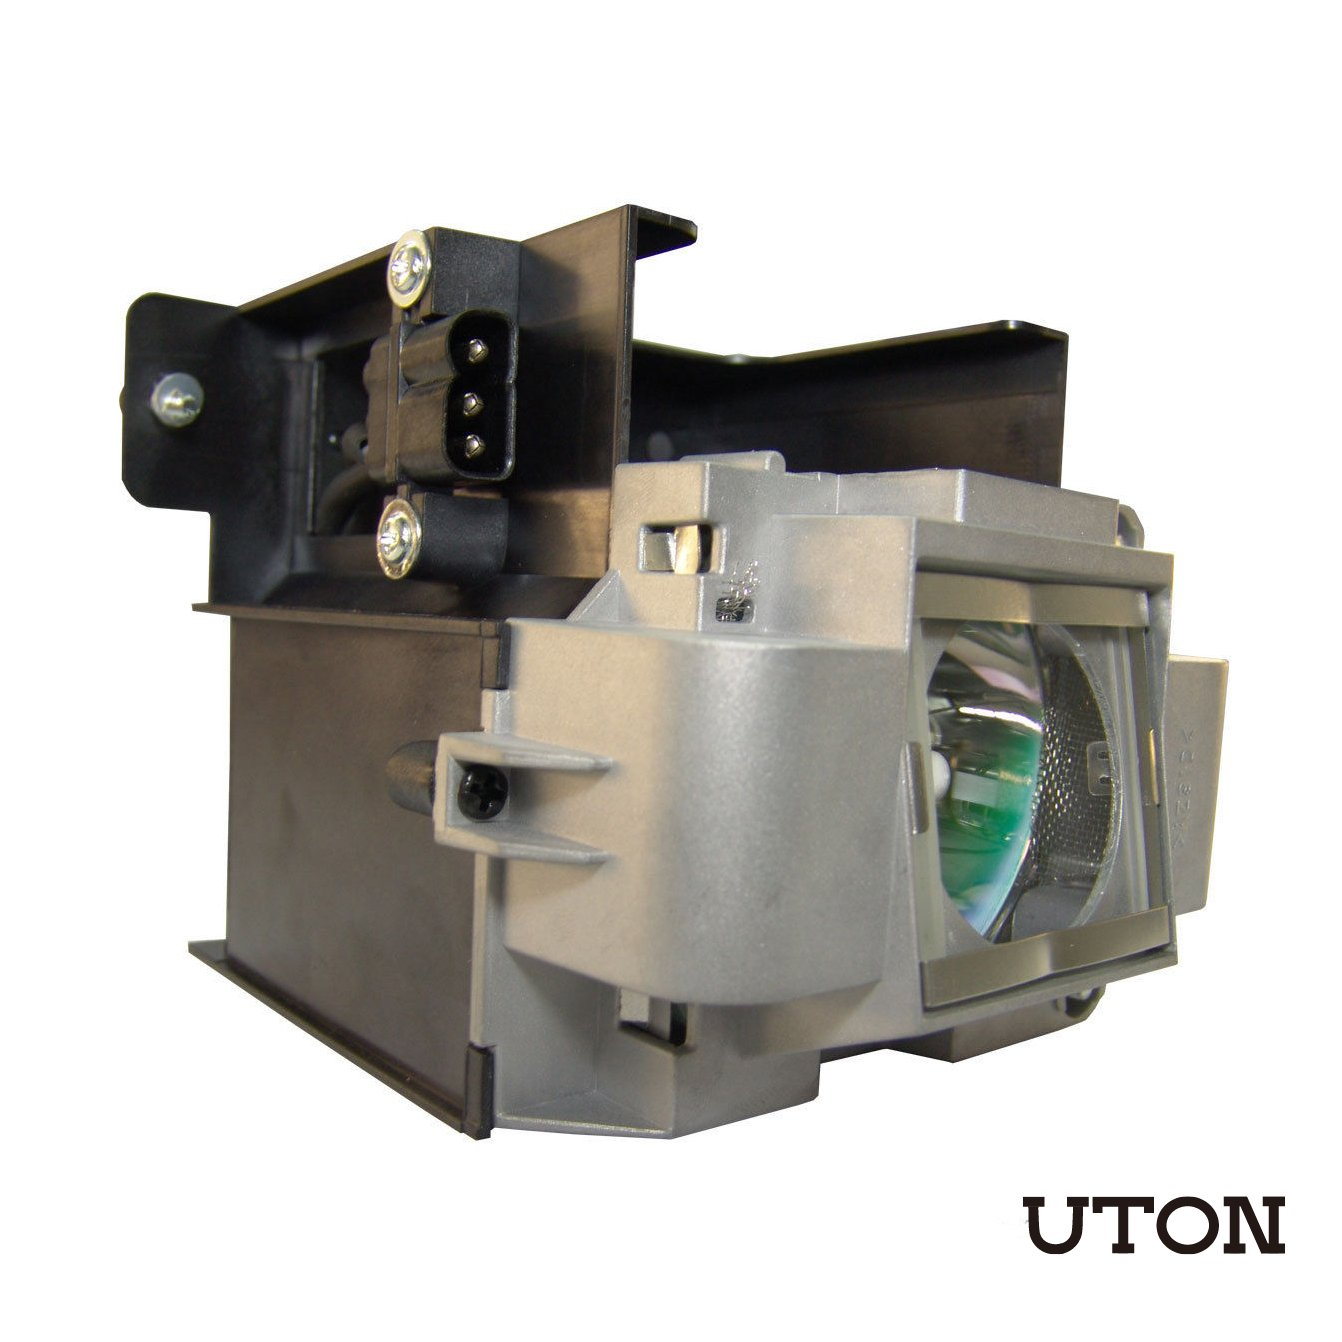 For VLT-XD3200LP Replacement Projector Lamp with Housing for MITSUBISHI WD3200U WD3300U XD3200U XD3500U Projector(Uton)